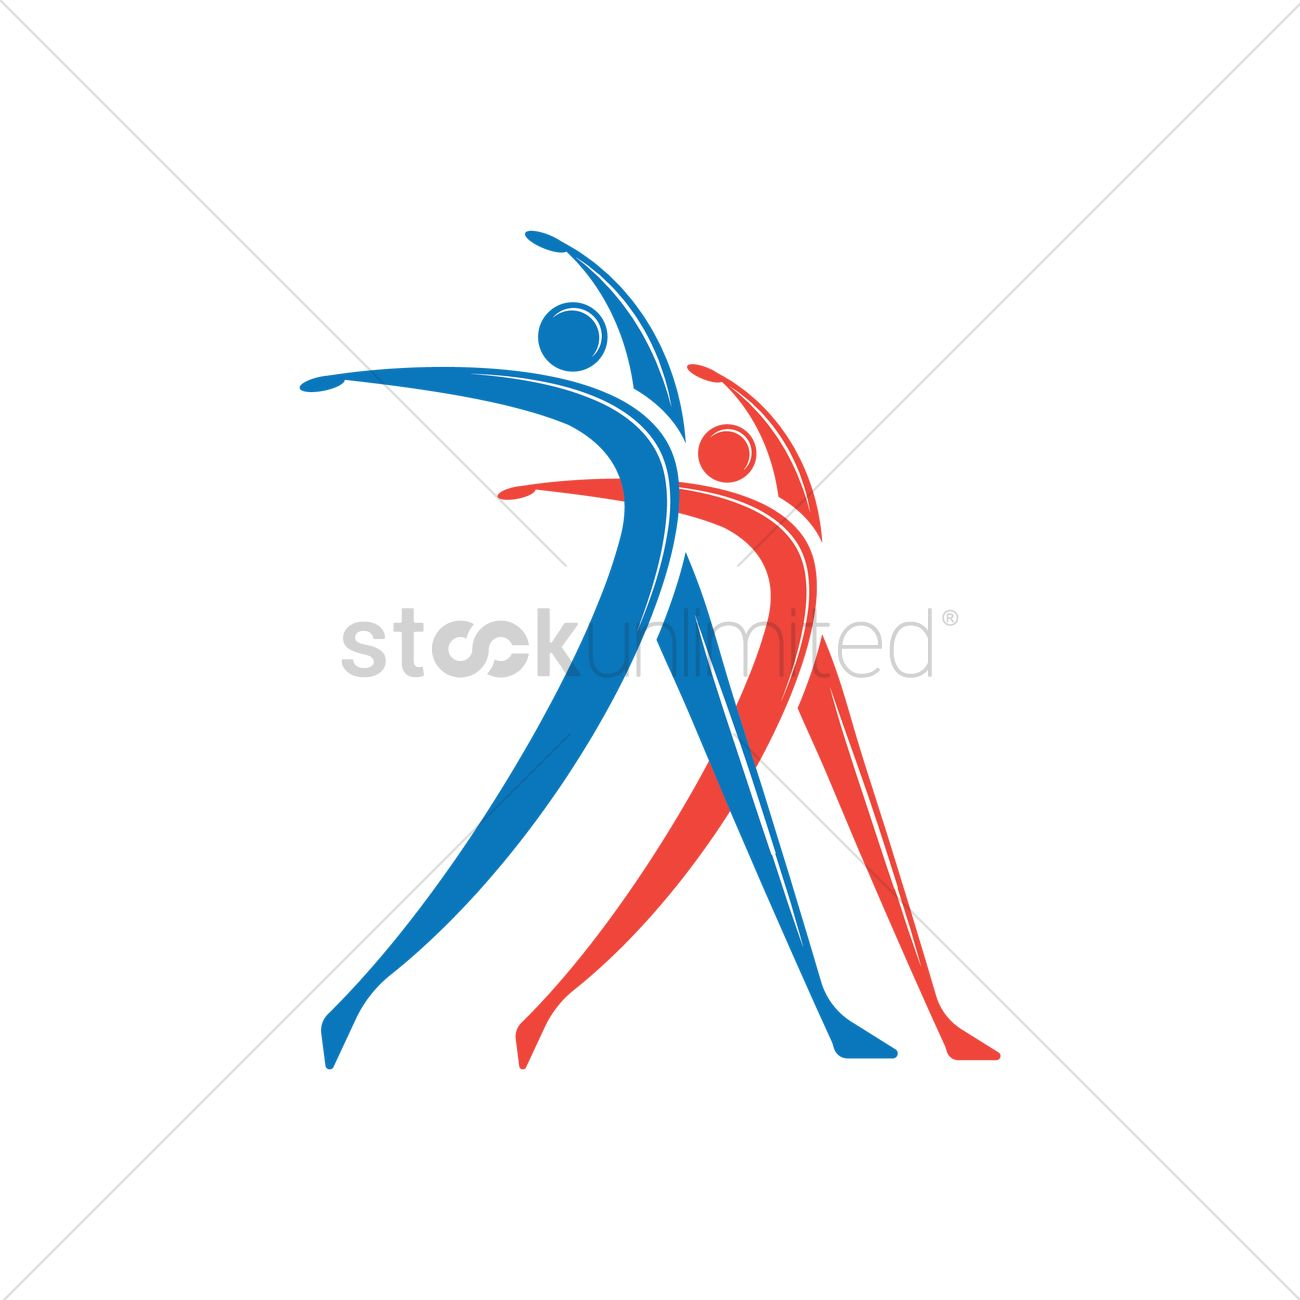 Icon Icons Shape Shapes Fitness Exercise Logo Logos Healthy.